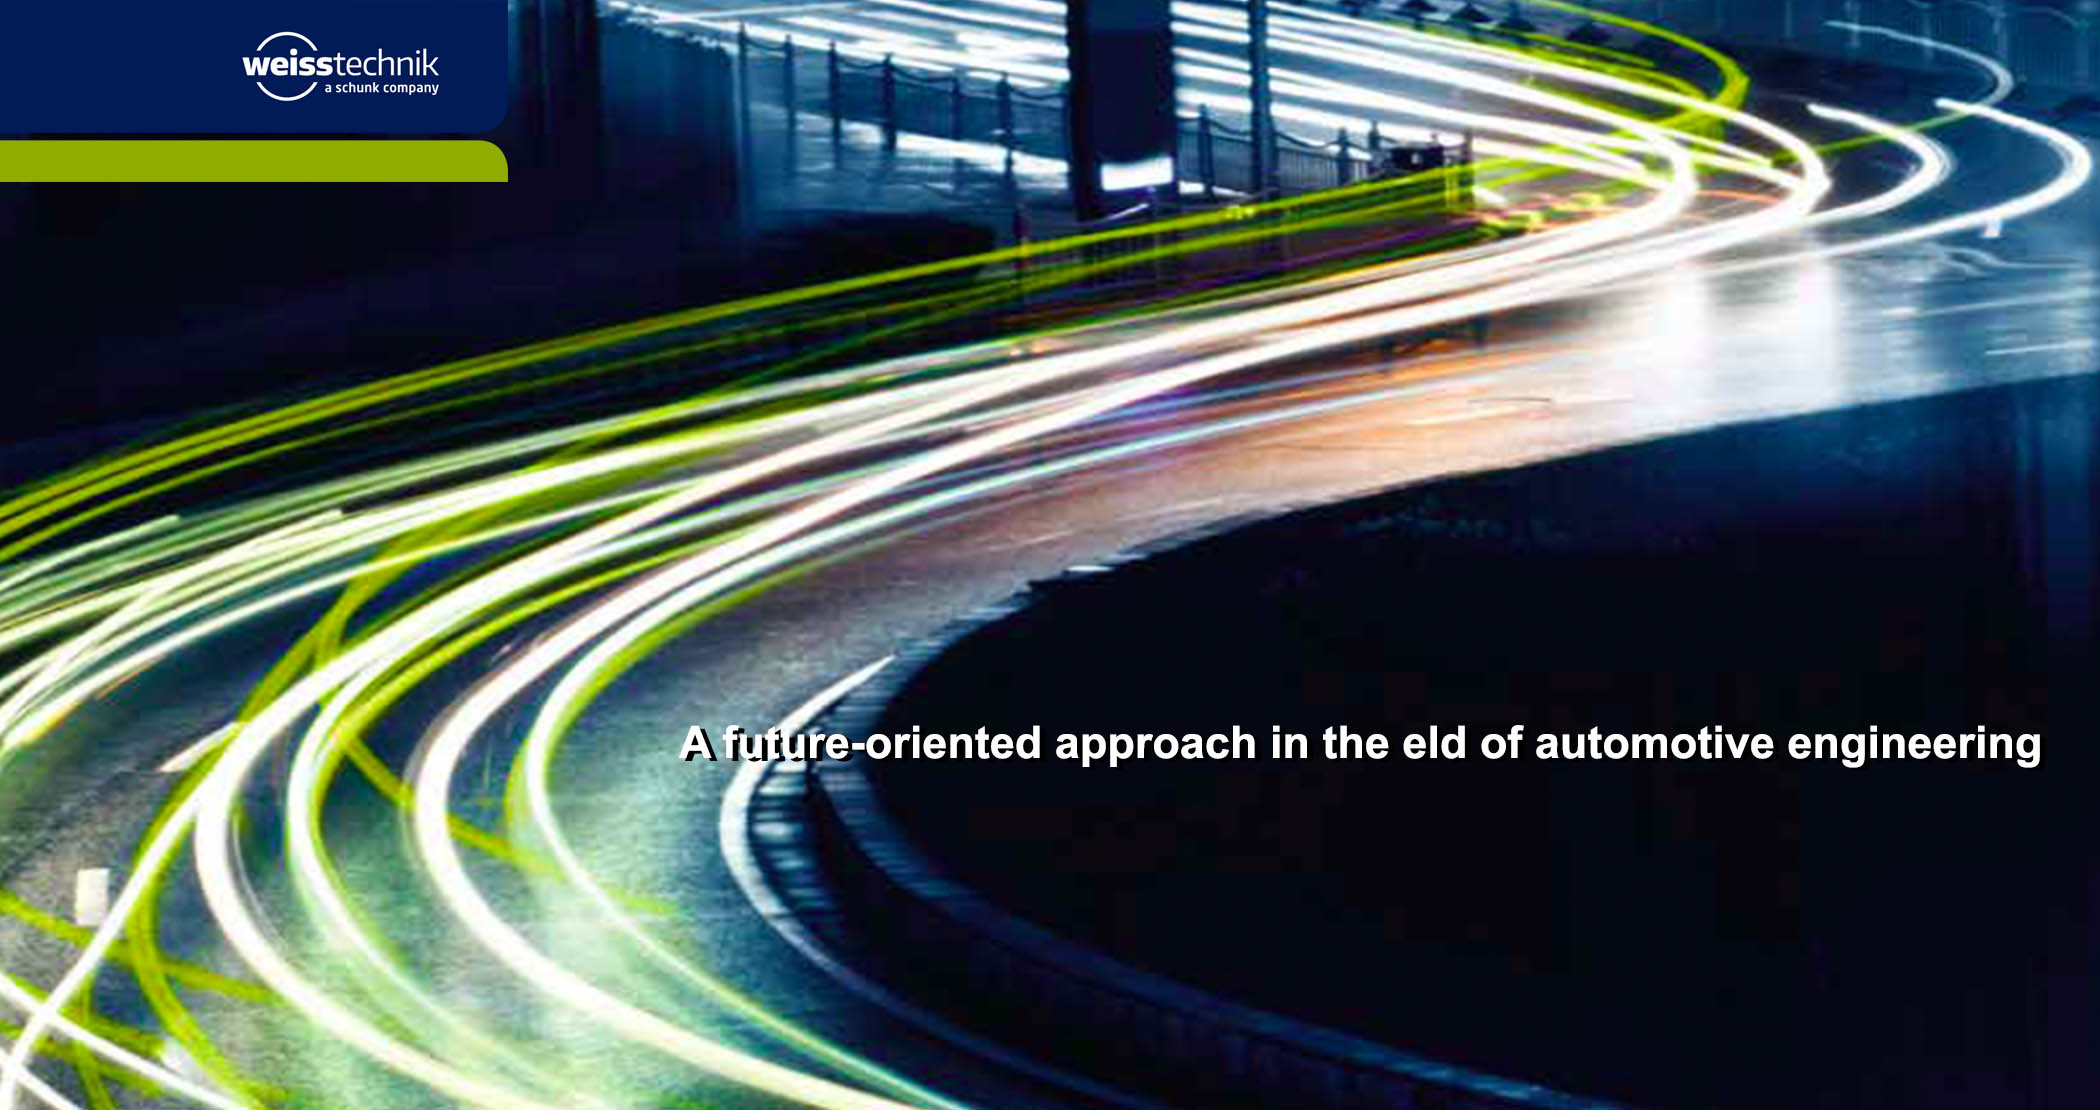 A future-oriented automotive industry